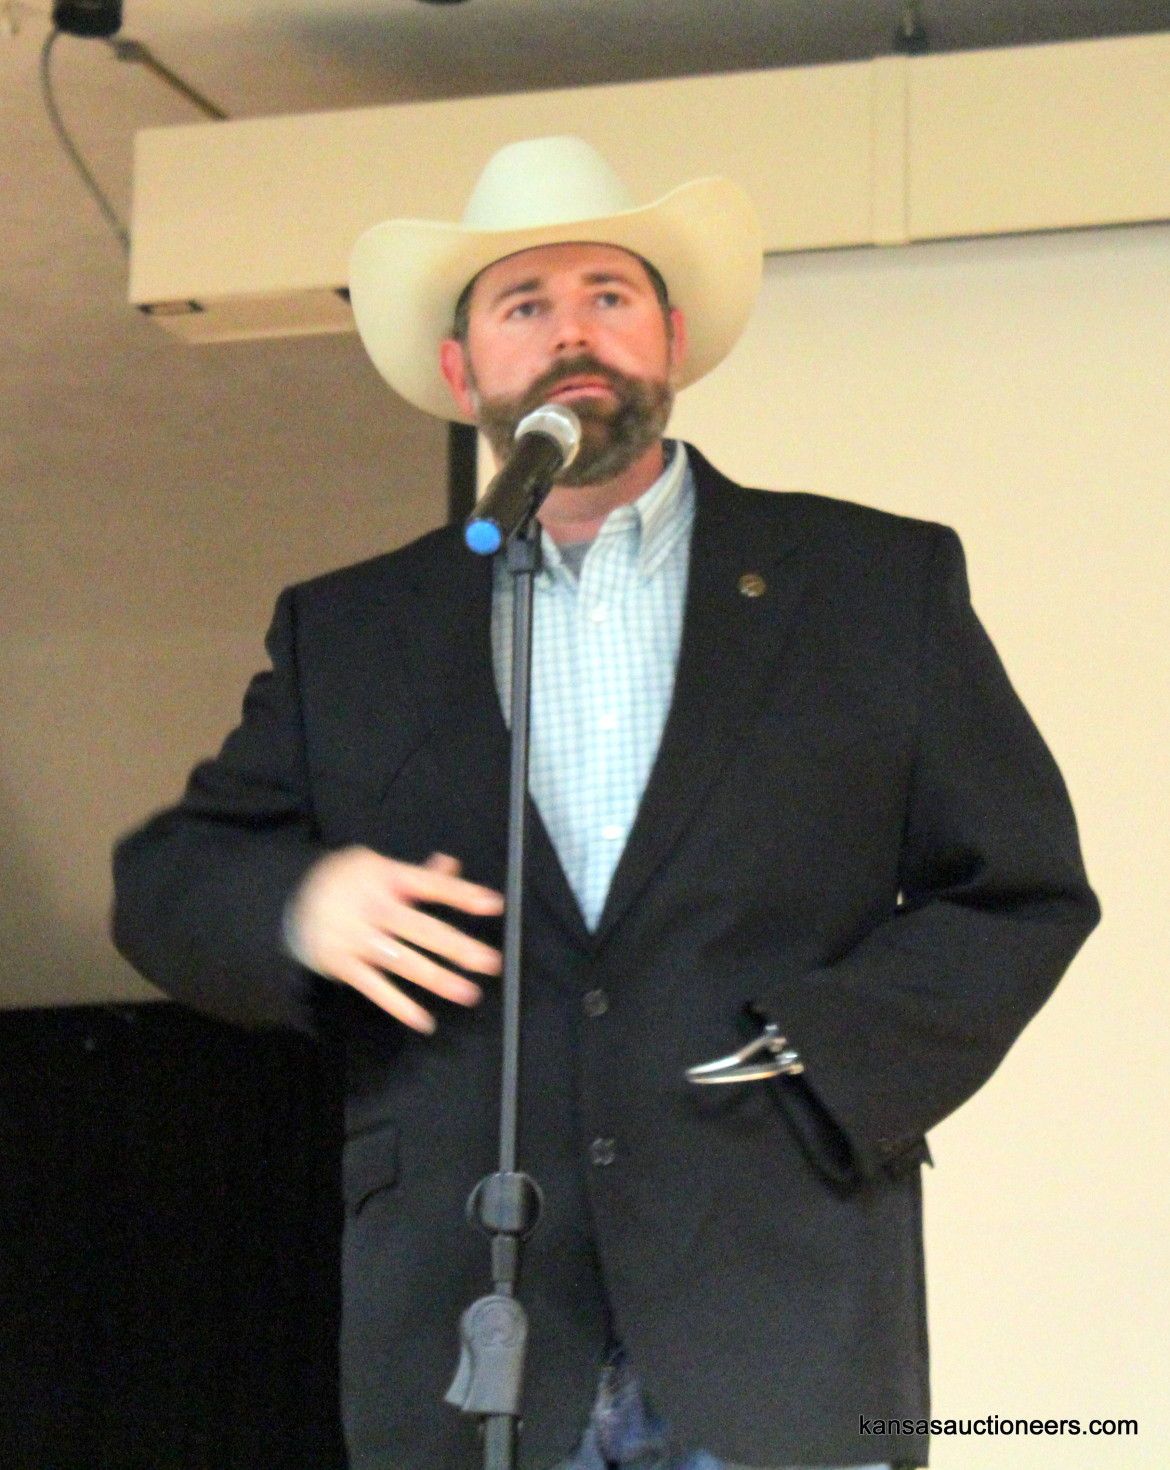 Ross Daniels competing in the 2016 Kansas Auctioneer Preliminaries.